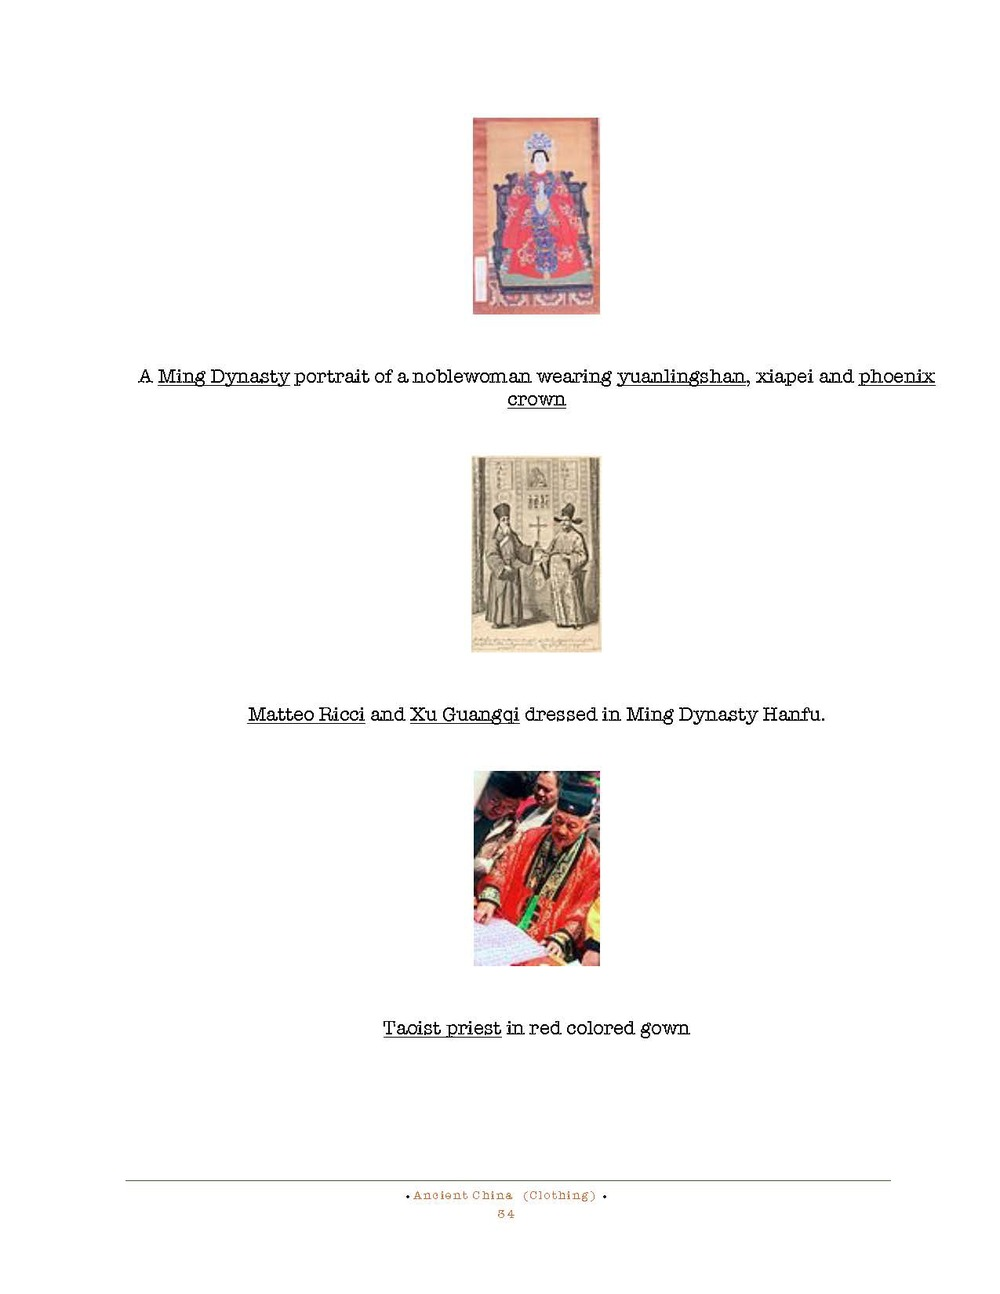 HOCE- Ancient China Notes (clothing)_Page_34.jpg